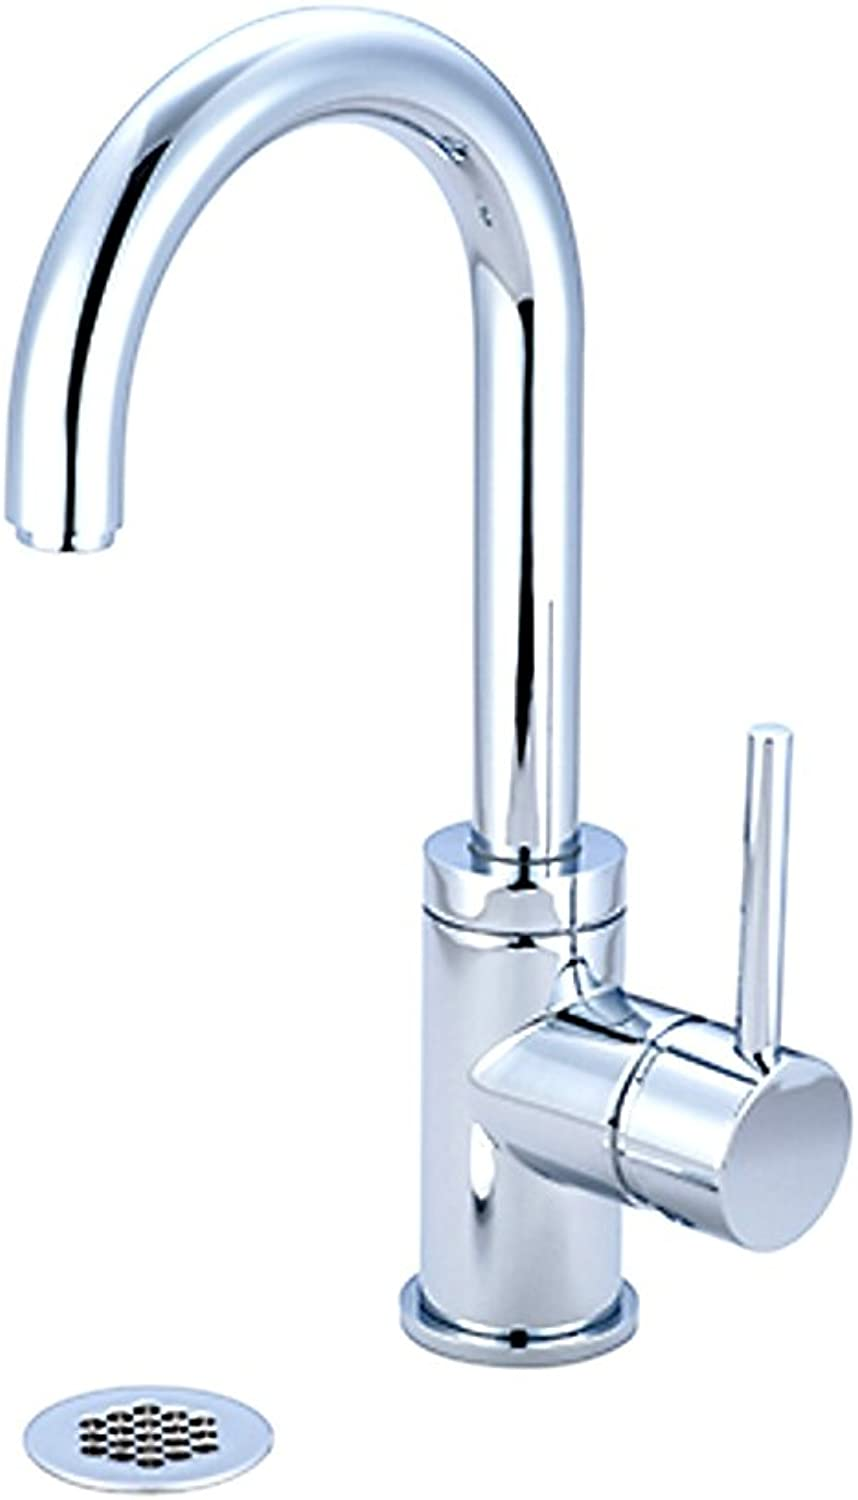 Pioneer 3Mt181G-Bn Single Handle Lavatory Faucet, Pvd Brushed Nickel Finish